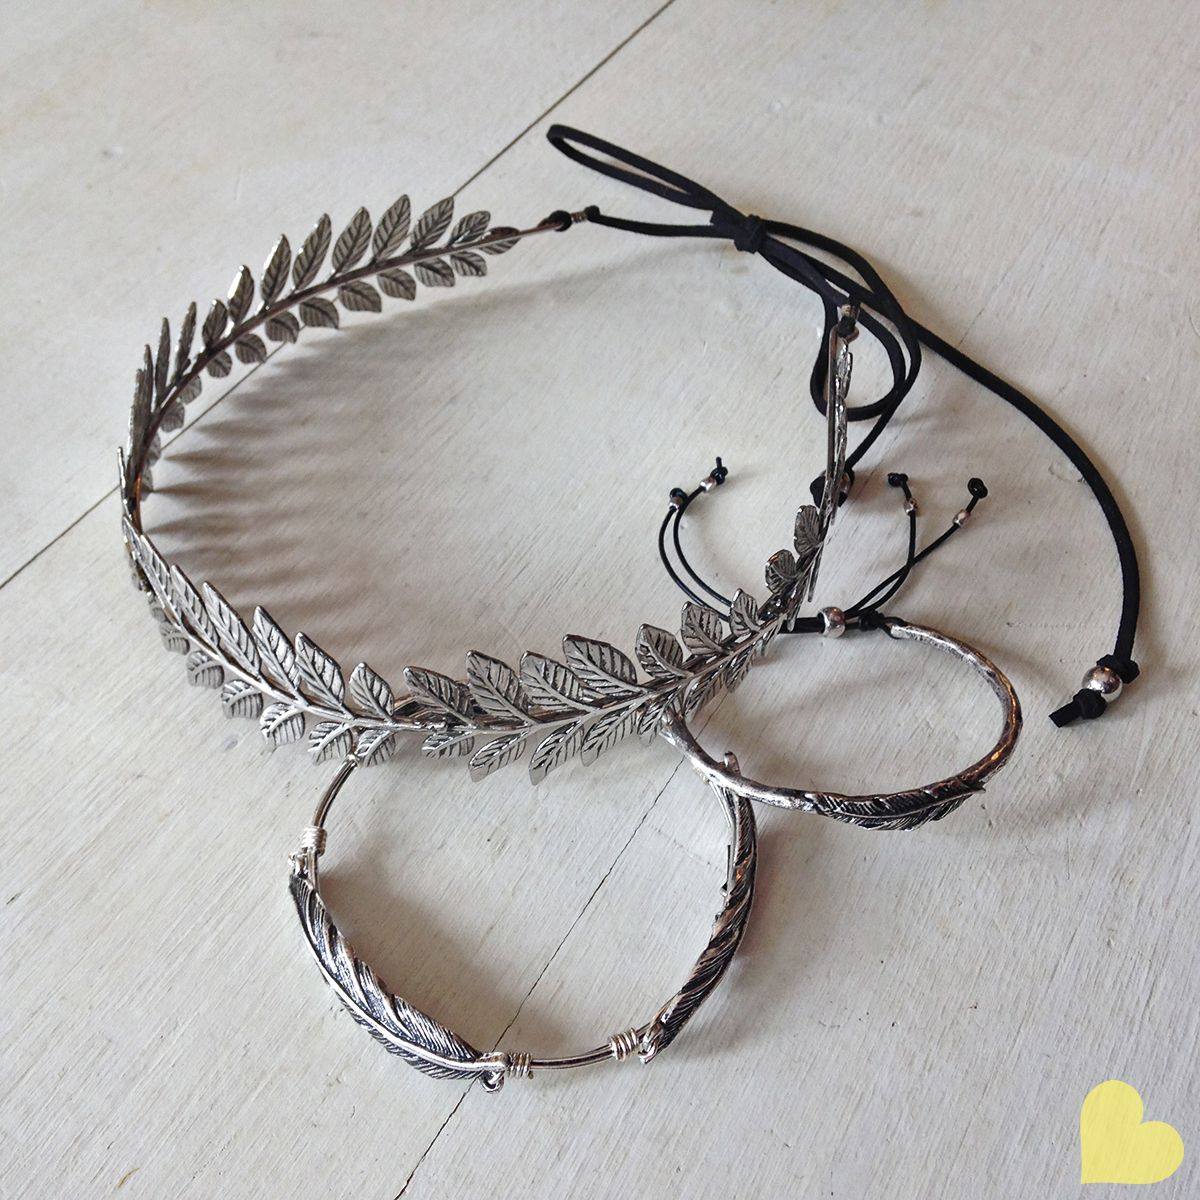 New accessories just hit the store, including these dreamy bracelets and crowns...also find feather and flower headbands, scarves, stacking bracelets, and tons of new styles of sunglasses!